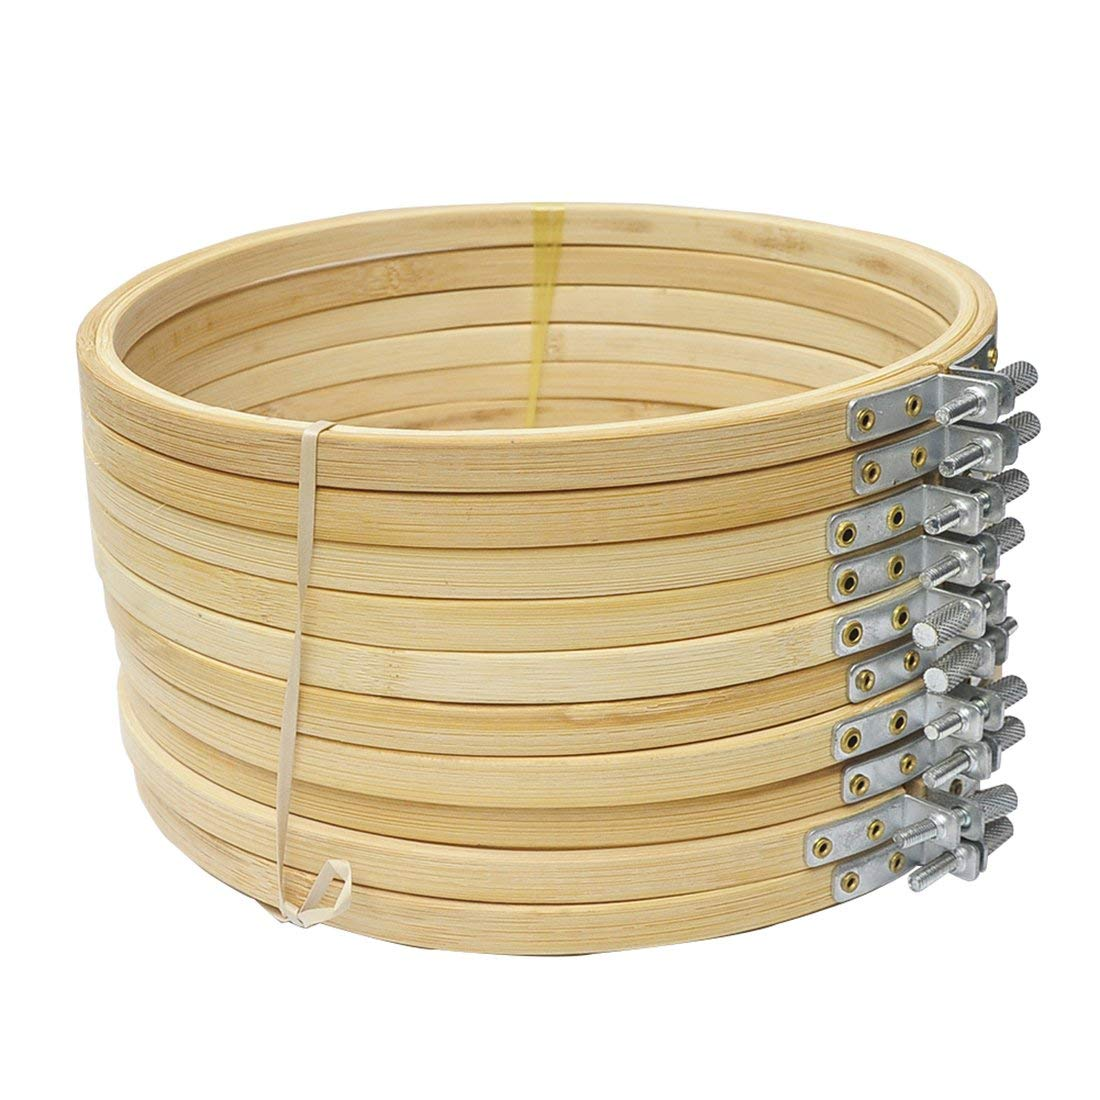 10 Pieces 6.7inch 17cm Round Wooden Embroidery Hoops Set Bulk Wholesale Adjustable Bamboo Circle Cross Stitch Hoop Ring